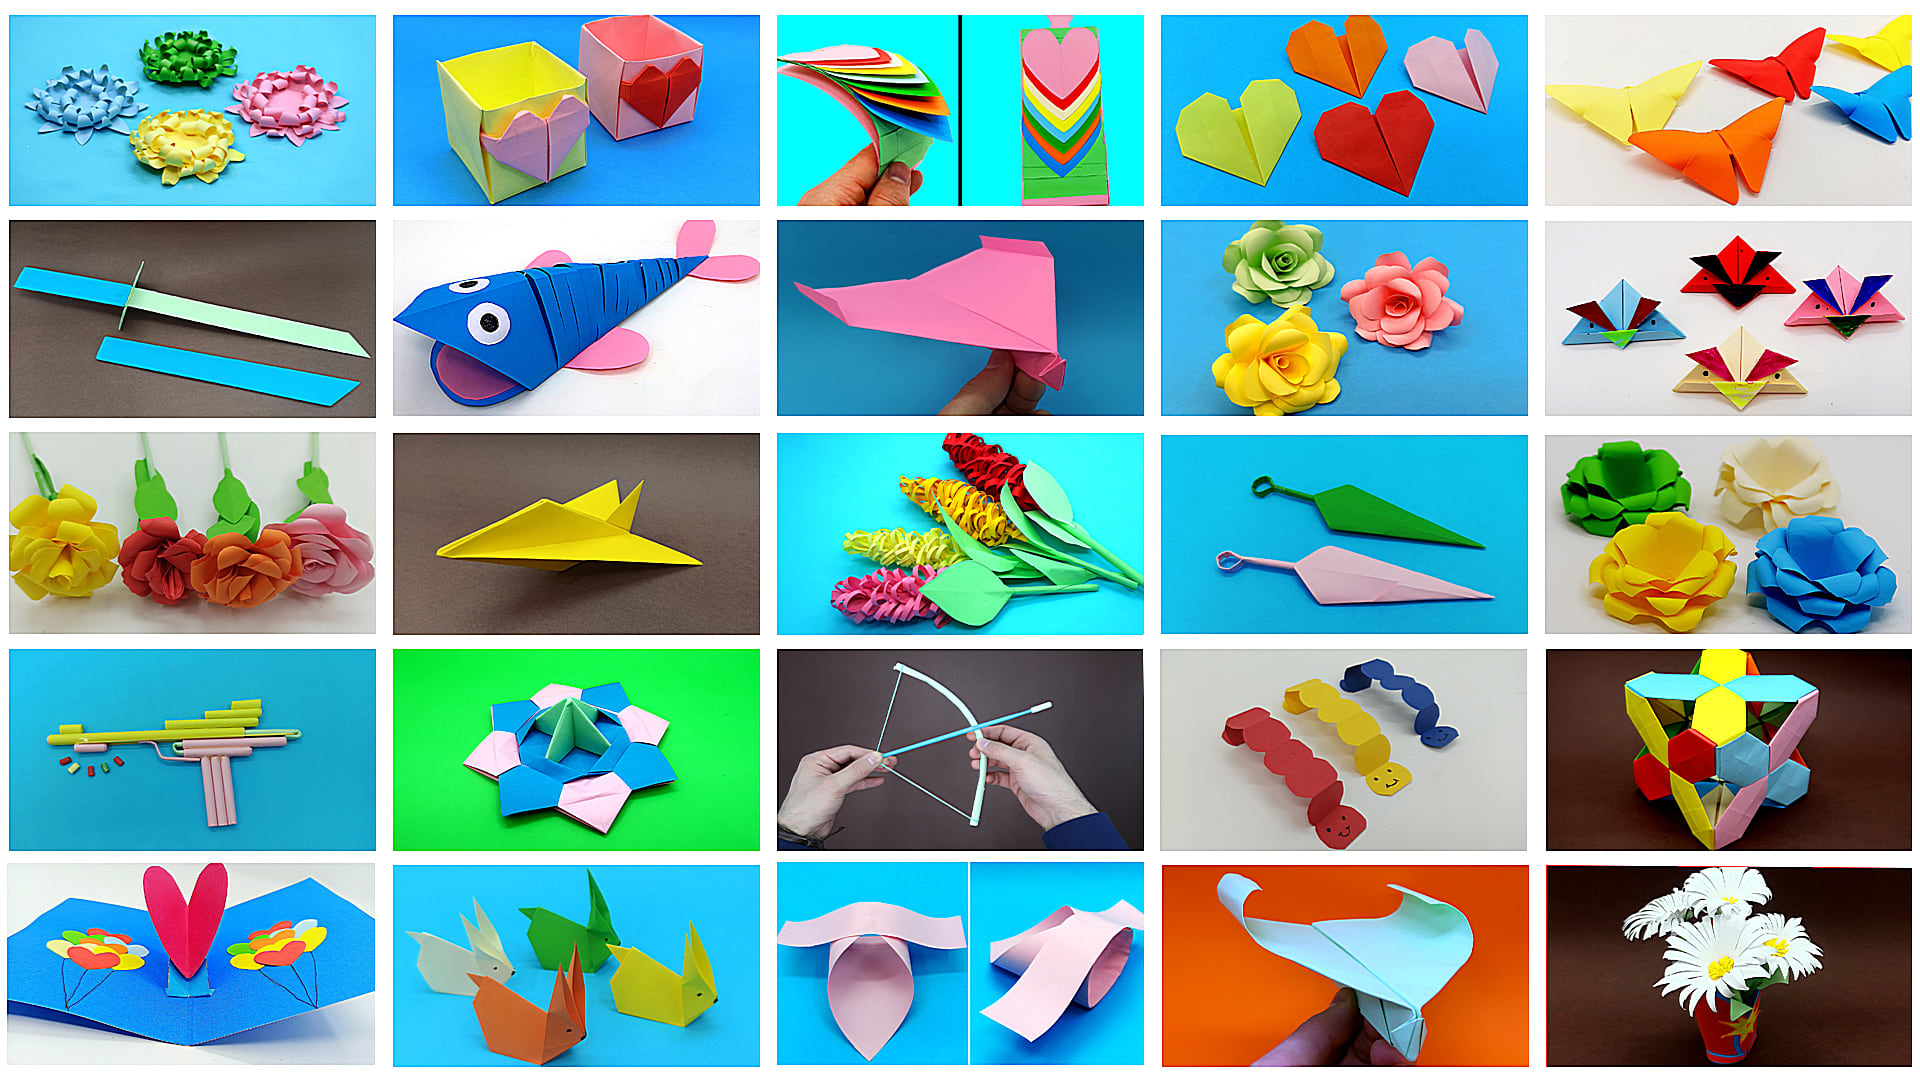 Make Professional Origami Diy Paper Craft Videos For Youtube Facebook Etc By Ruslanabbasov